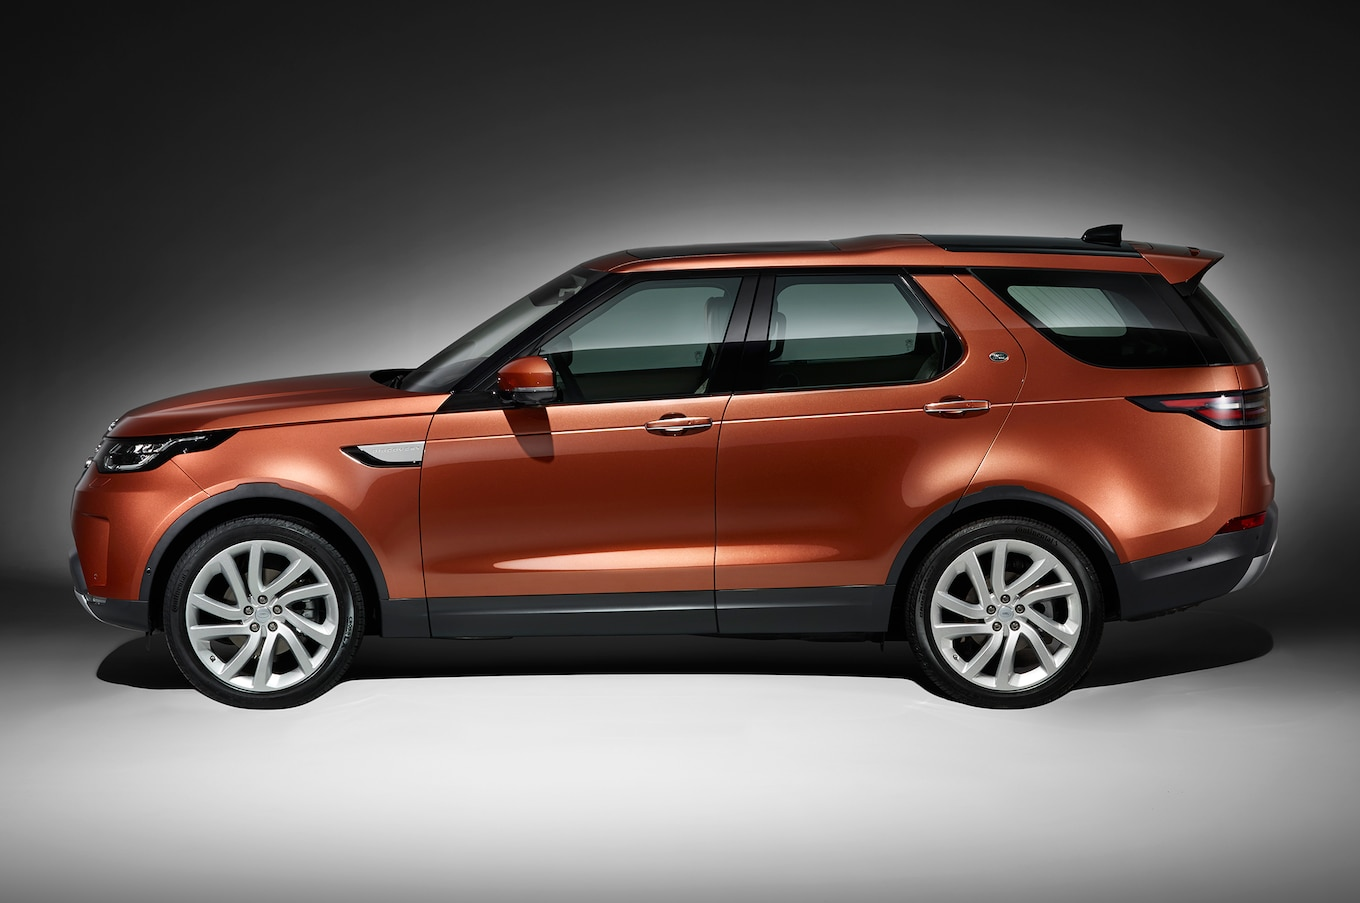 New Land Rover Discovery Is Ugly – Why Design Boss Blames License